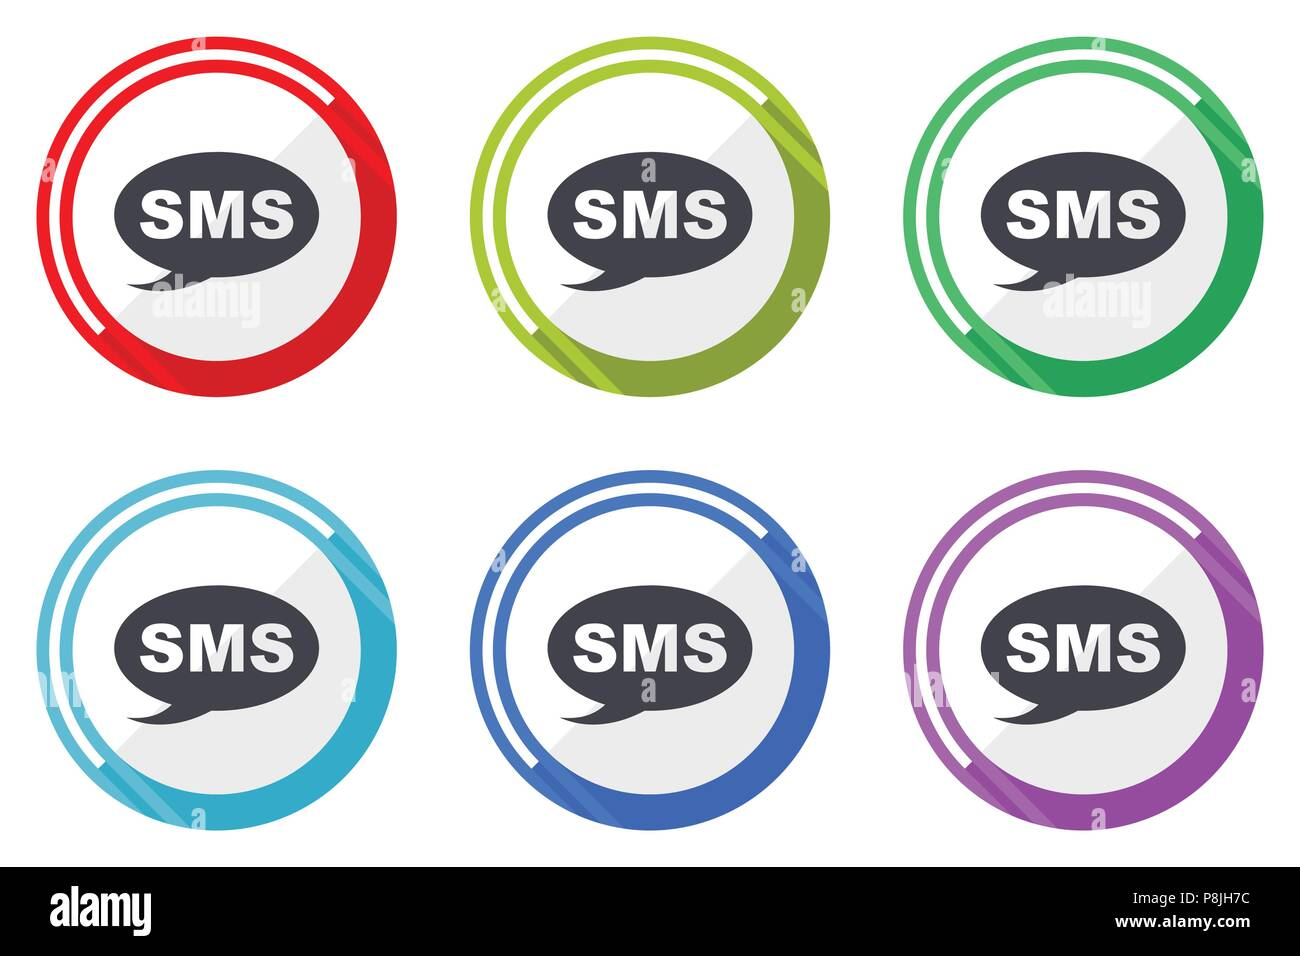 Sms Vector Icons Set Of Colorful Flat Design Internet Symbols On